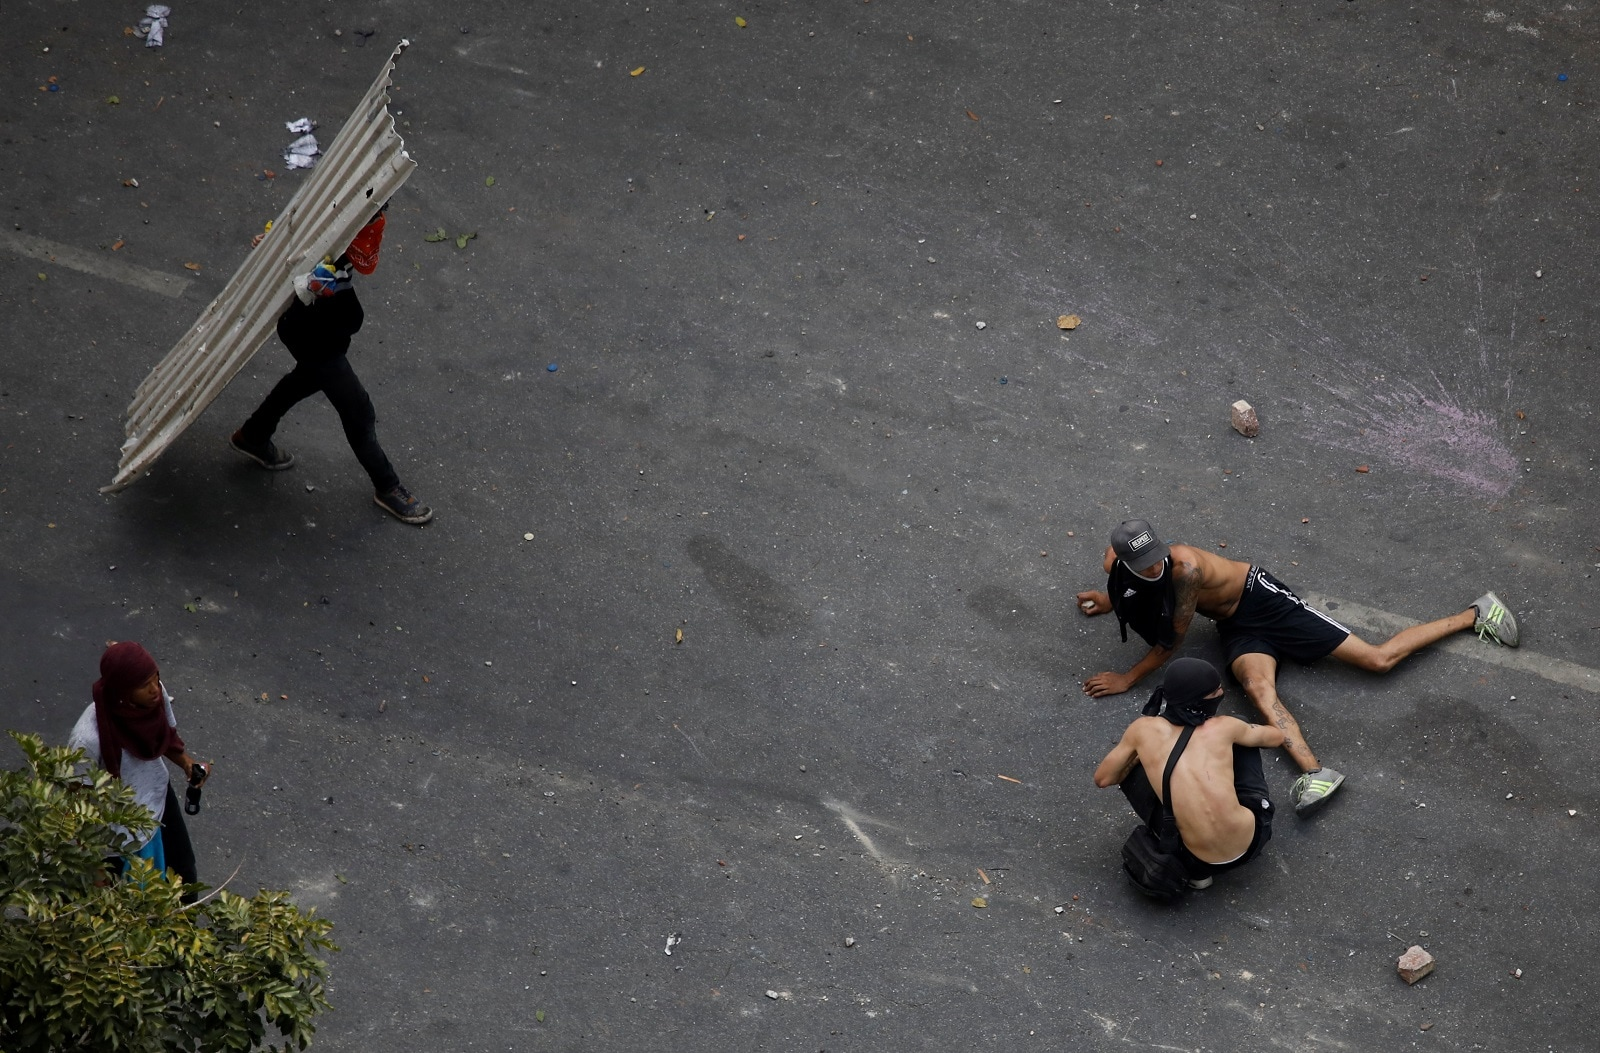 Demonstrators lay on the ground as they react to the sound of gunfire during clashes with security forces in Caracas Venezuela, May 1, 2019. REUTERS/Adriana Loureiro